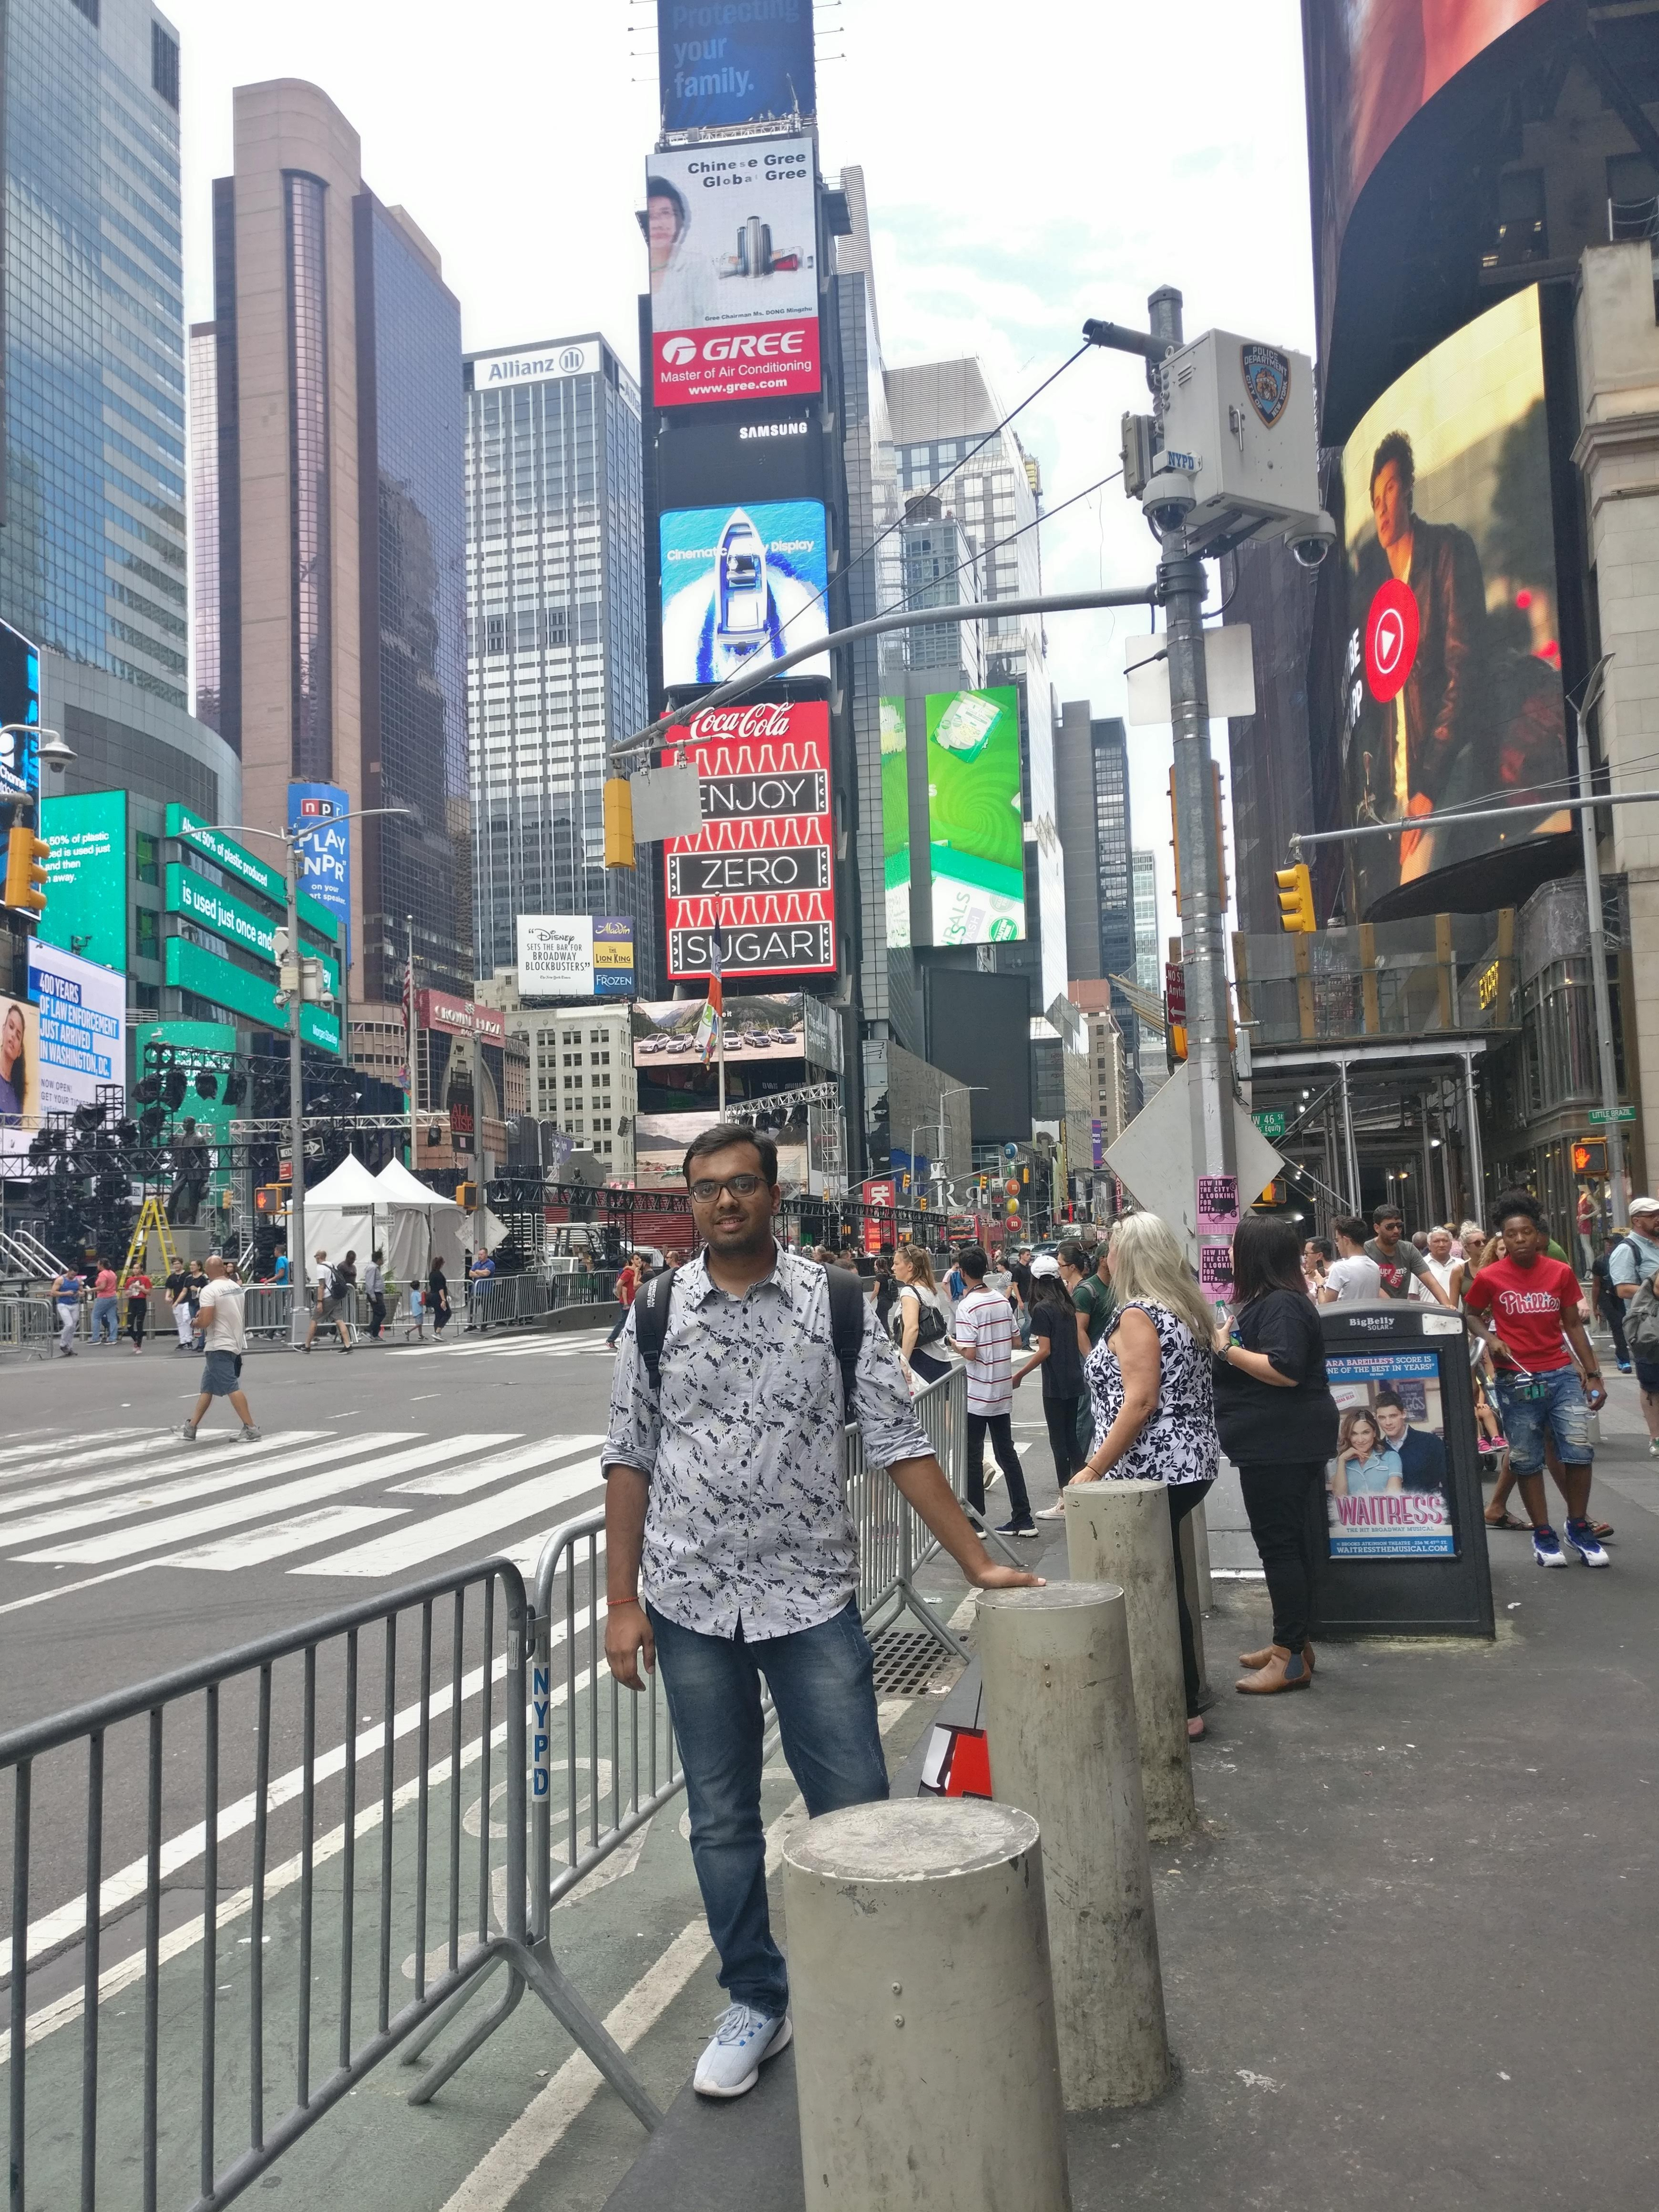 At the Times Square, New York City